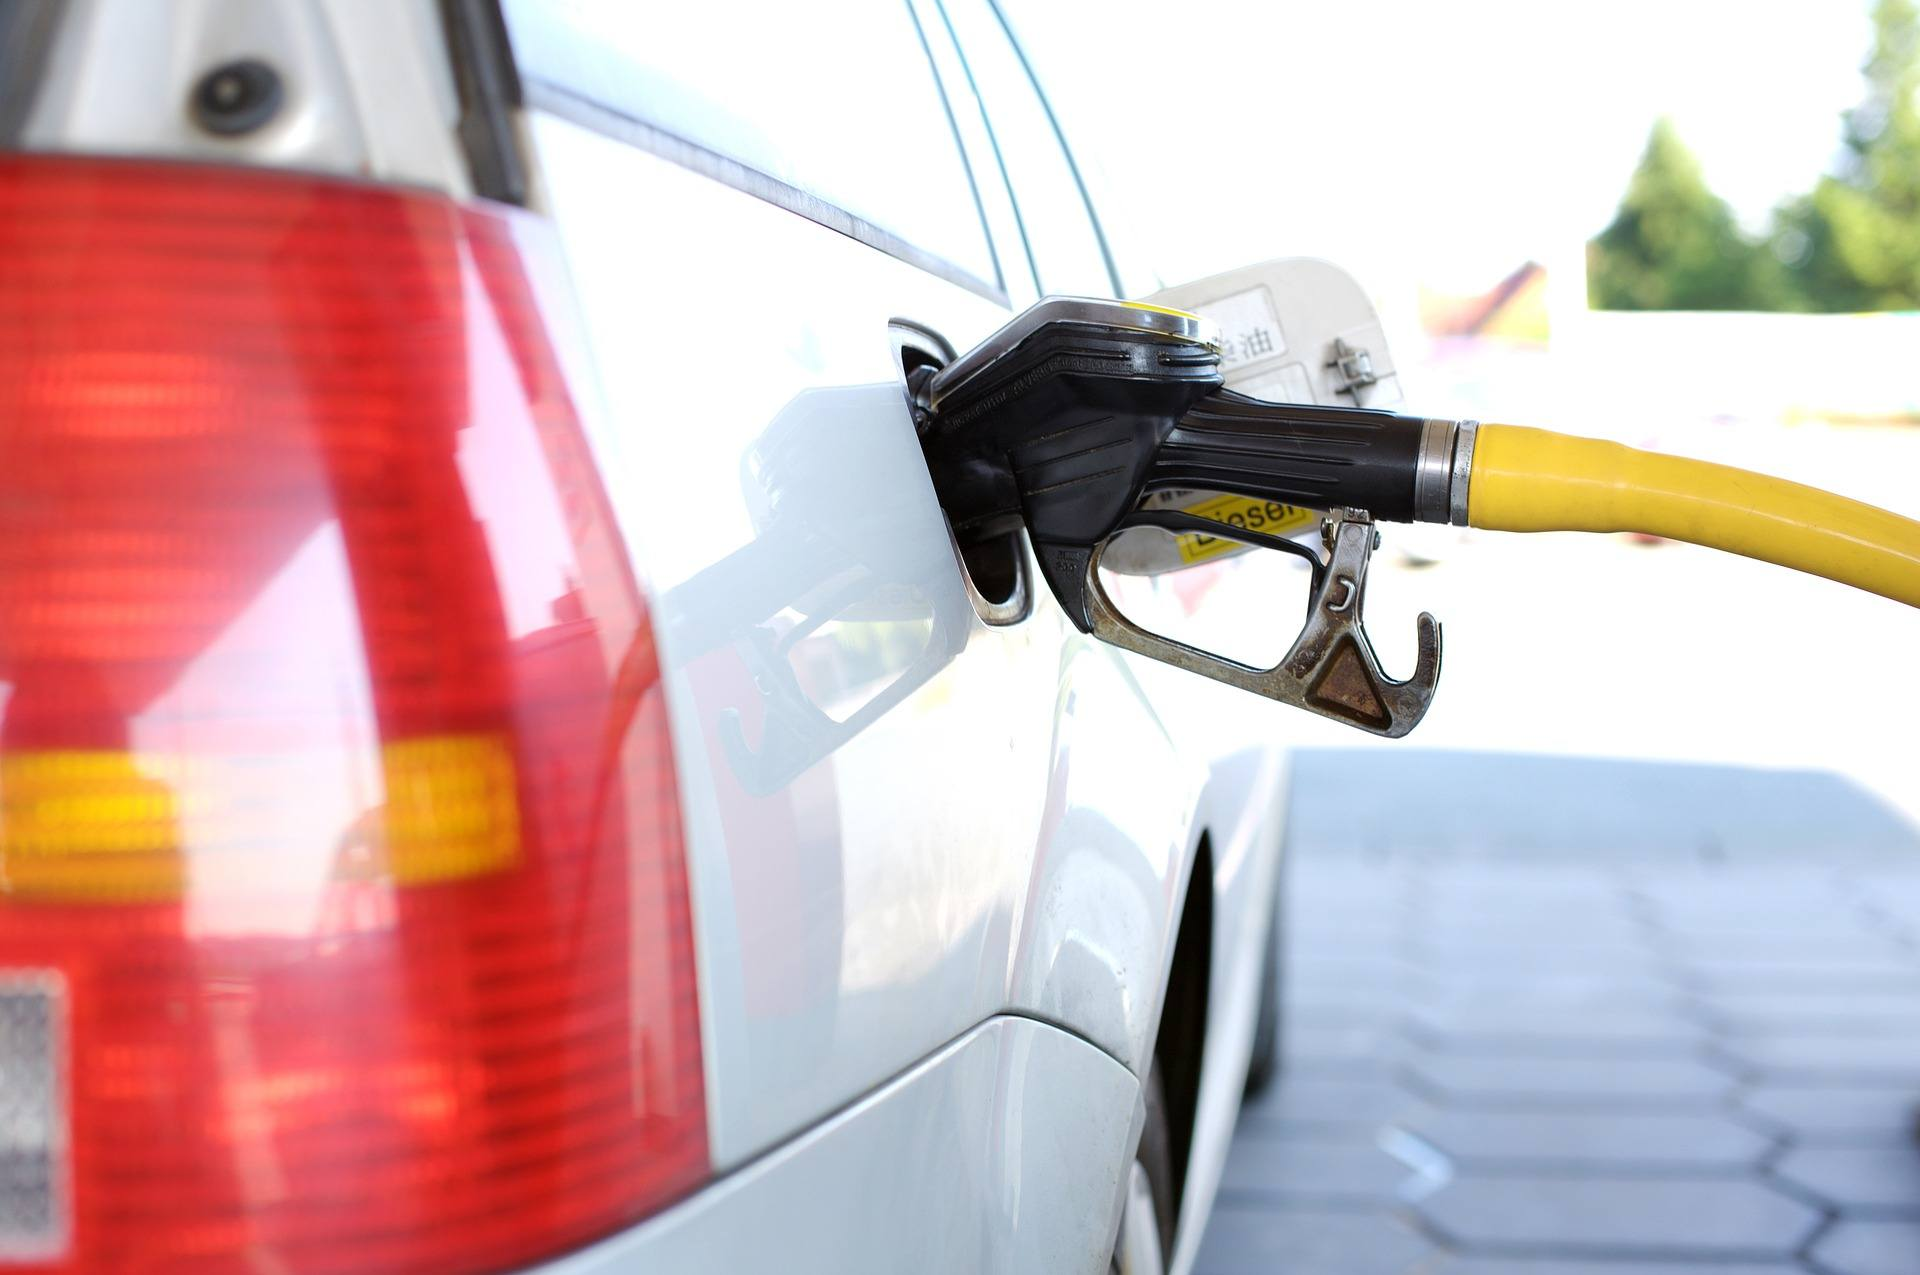 Refuel your hire car before you return it